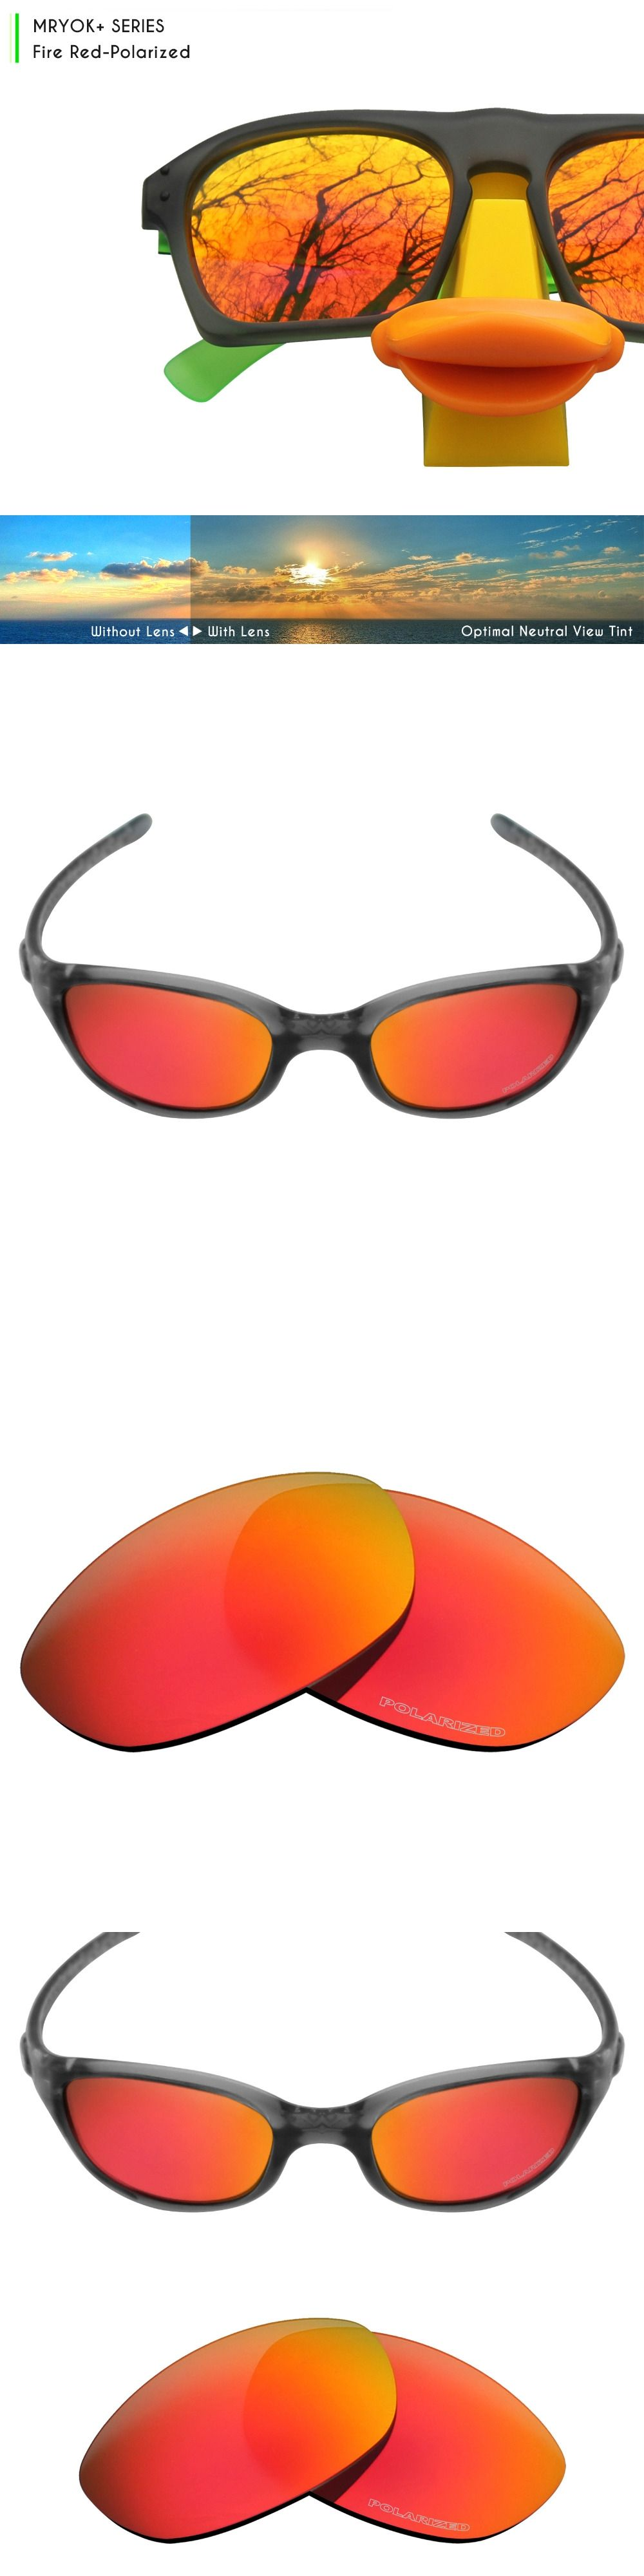 ac19a8479f9 Mryok+ POLARIZED Resist SeaWater Replacement Lenses for Oakley Fives 2.0  Sunglasses Fire Red